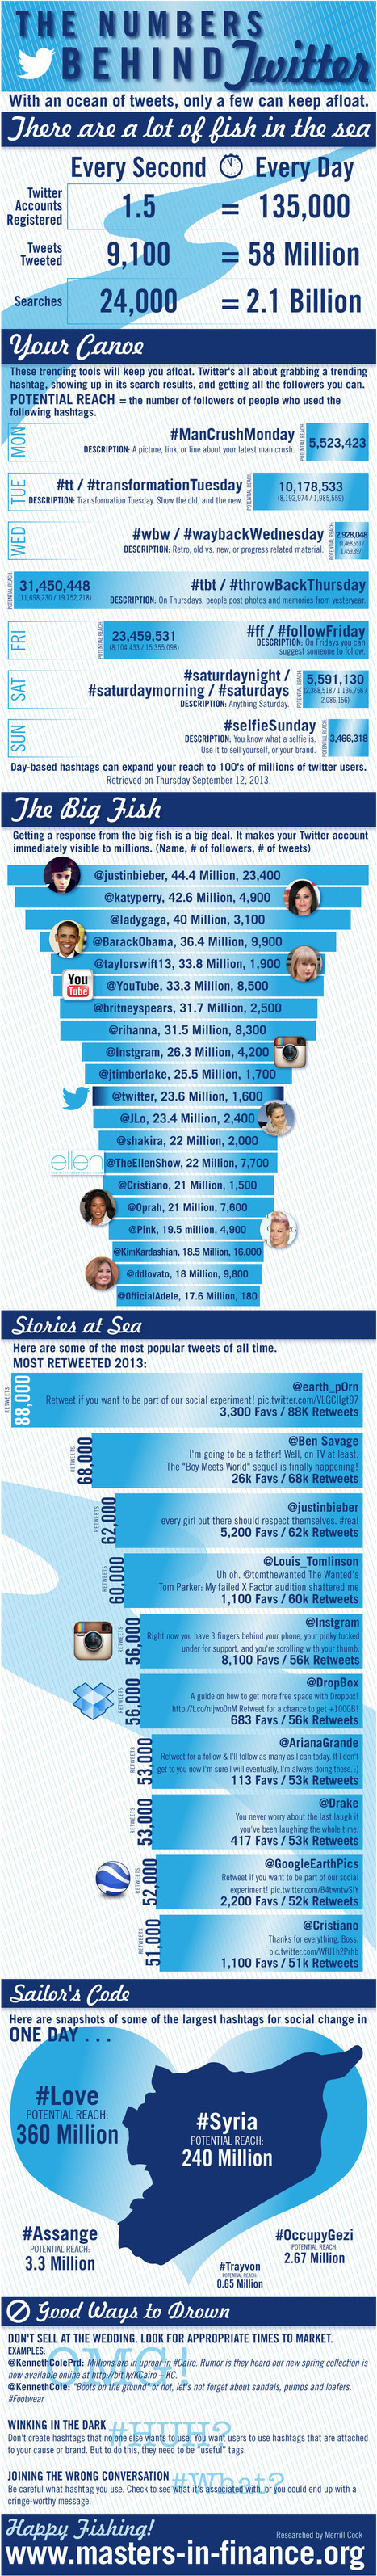 60 Sensational Social Media Facts and Statistics on Twitter in 2013 - Jeffbullas's Blog | The WWW | Scoop.it